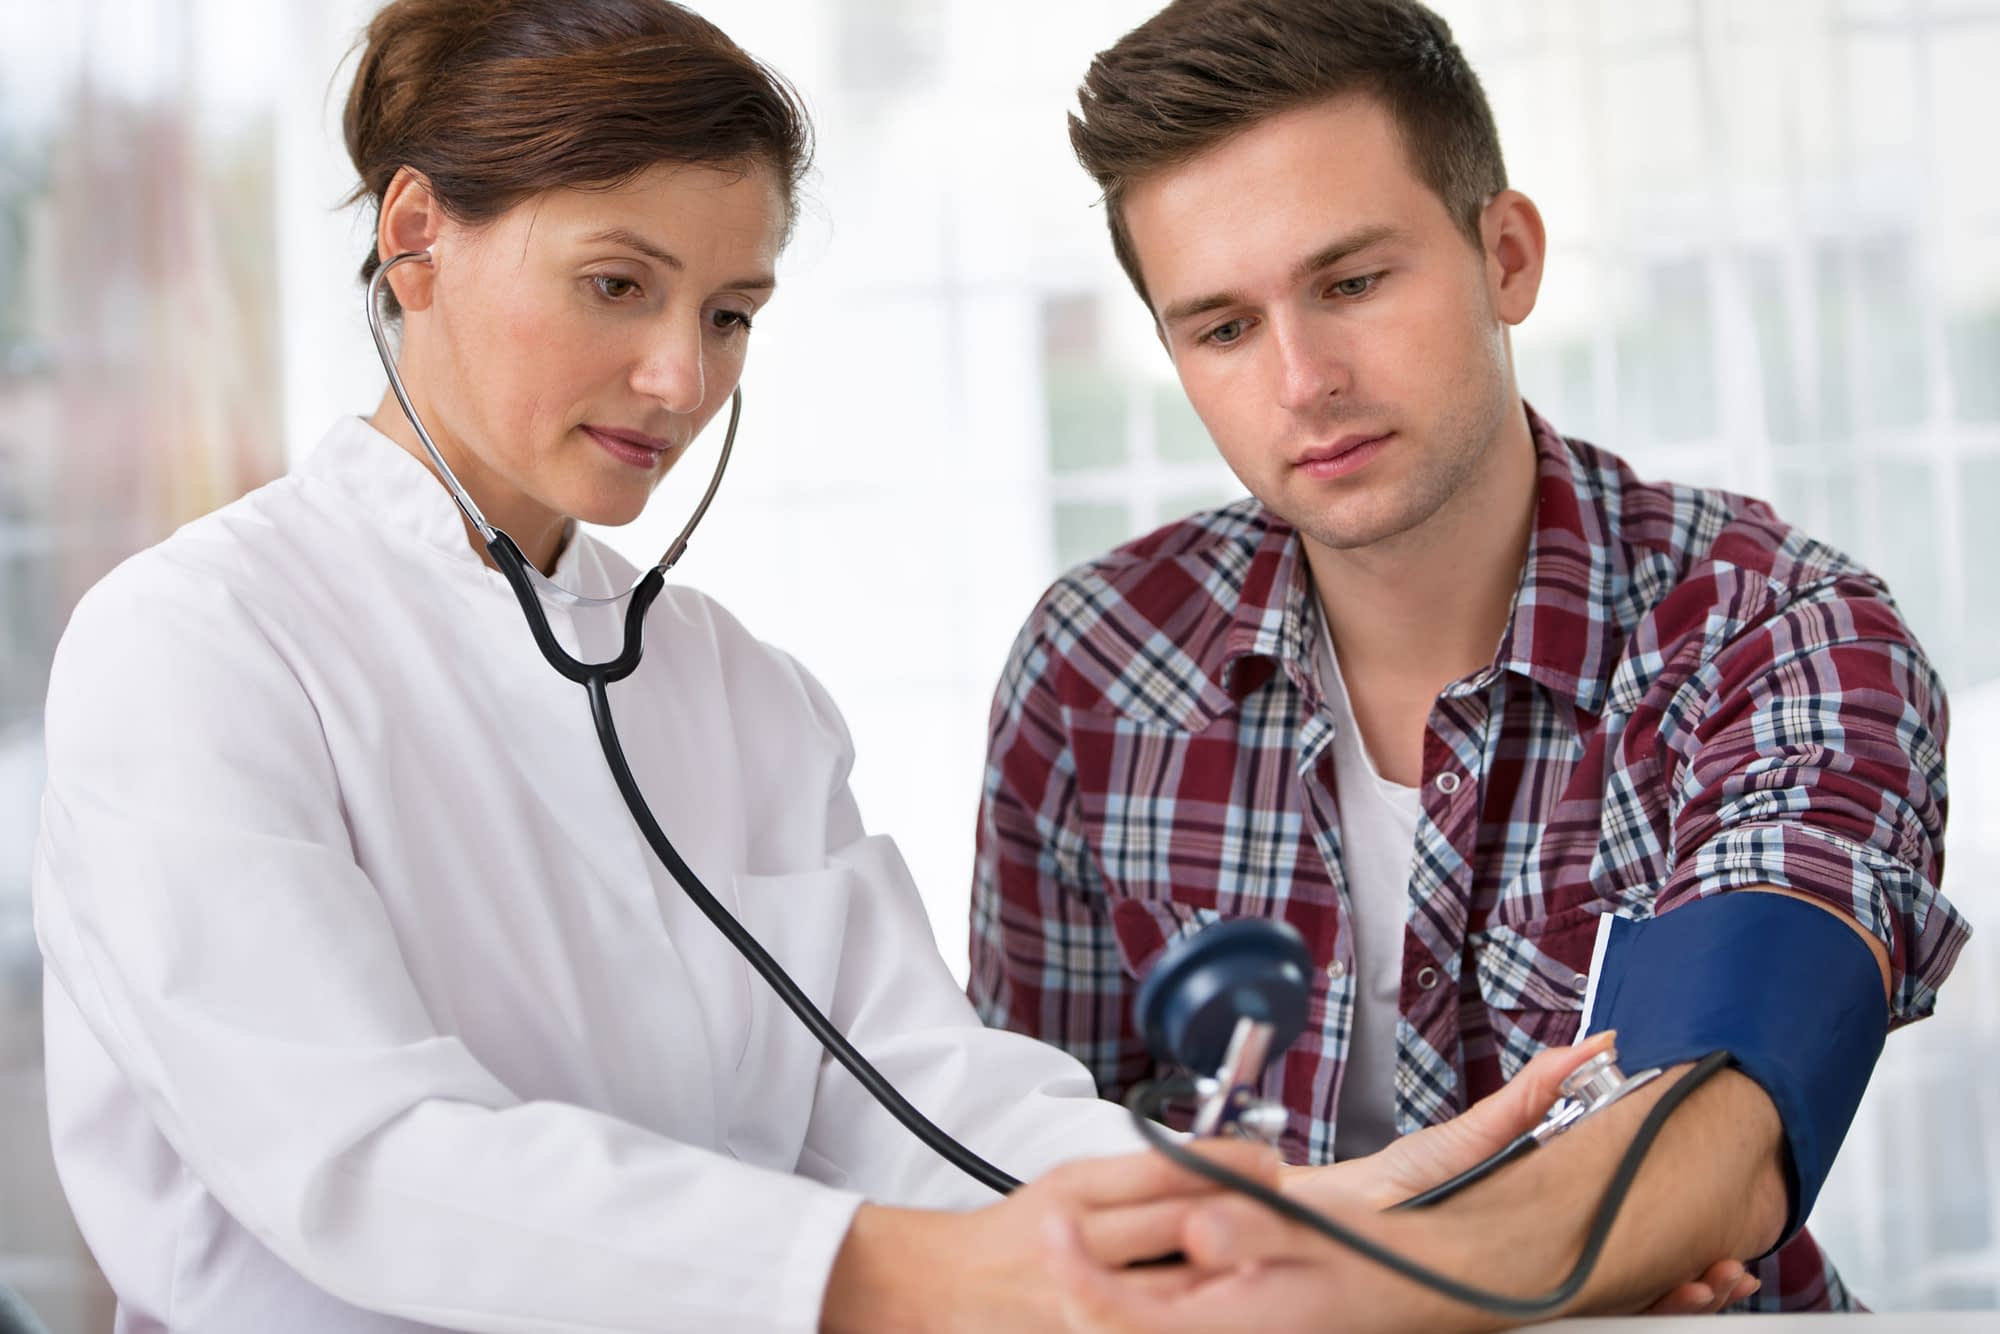 Four Tips When Obtaining an Independent Medical Examination